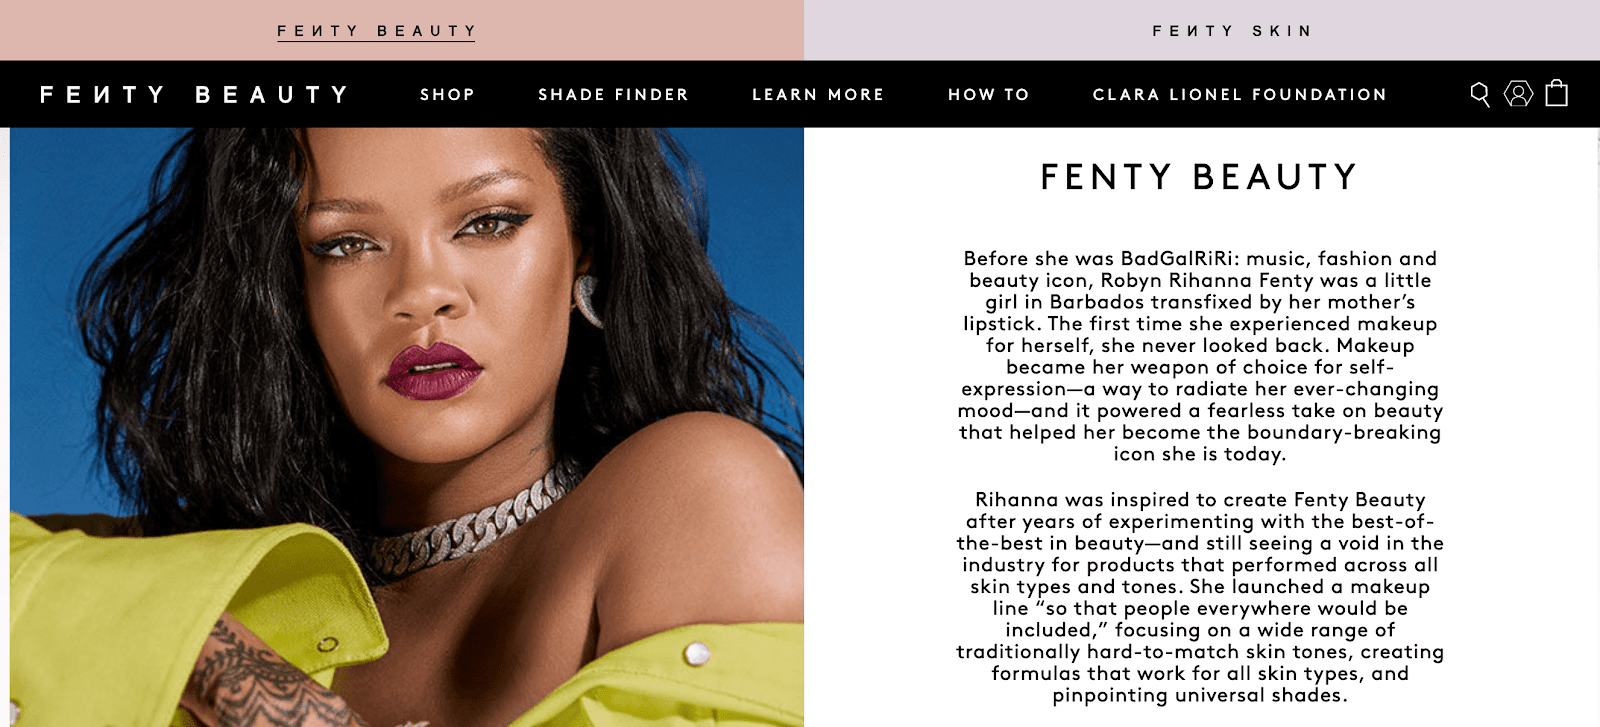 Fenty Beauty's About Us page, showcasing a playful, witty brand voice.